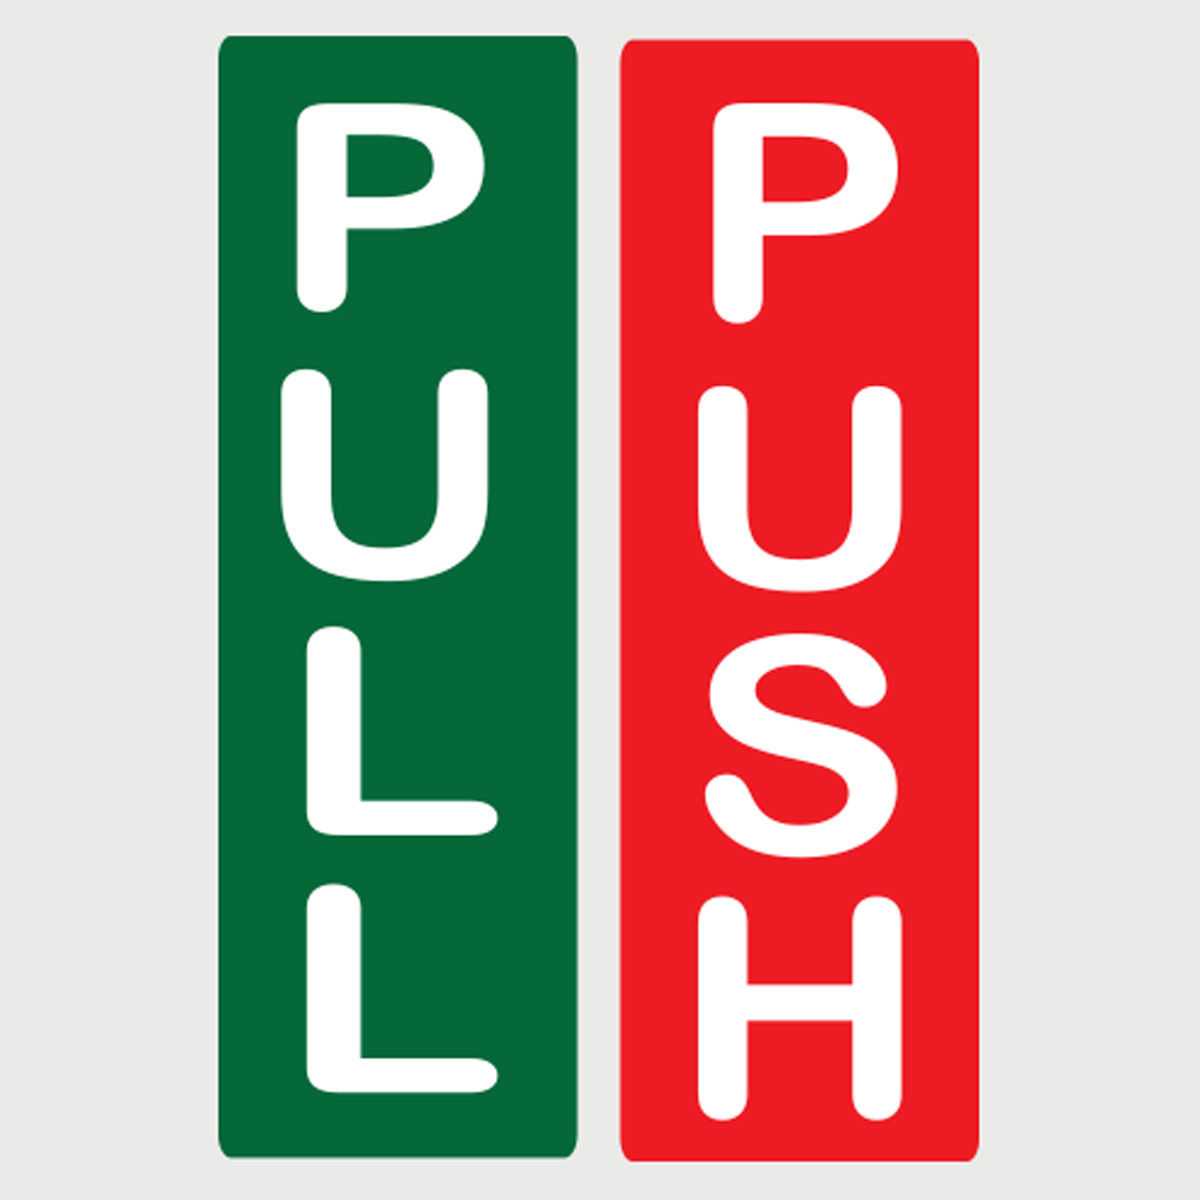 pull push door stickers shop signs window salon cafe